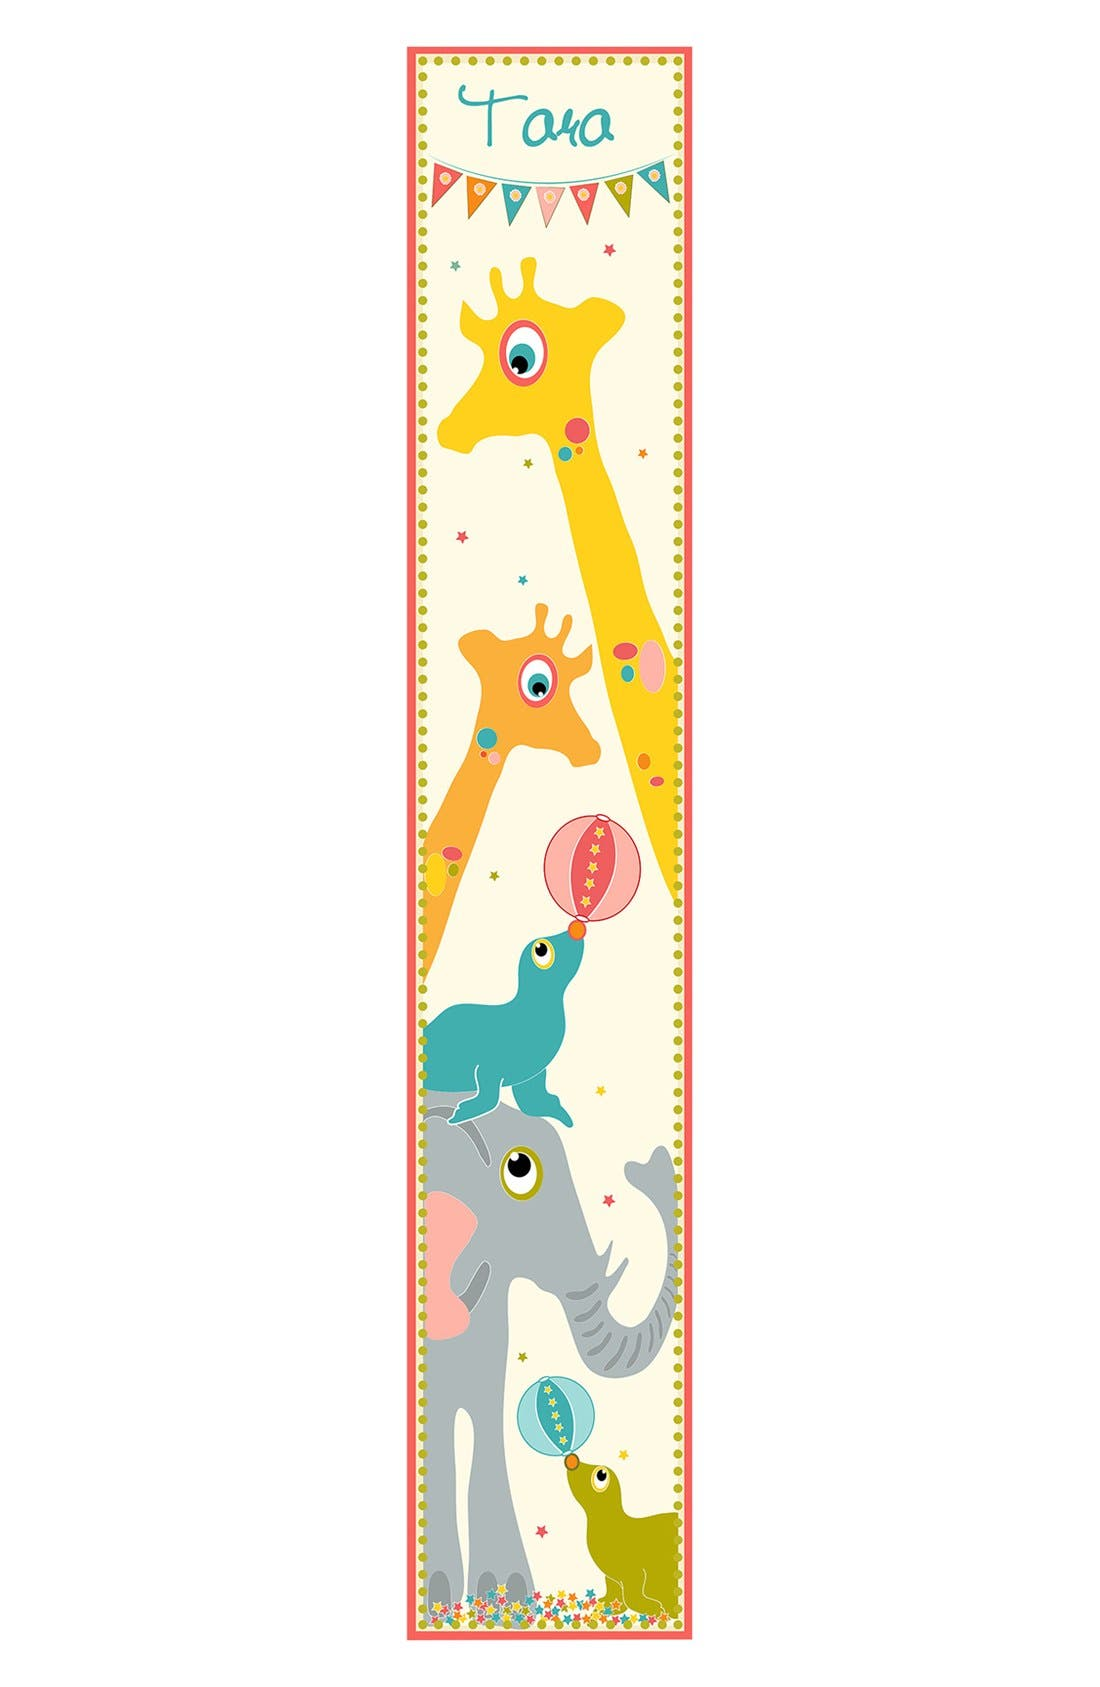 Alternate Image 1 Selected - Stupell 'Giraffe' Personalized Growth Chart